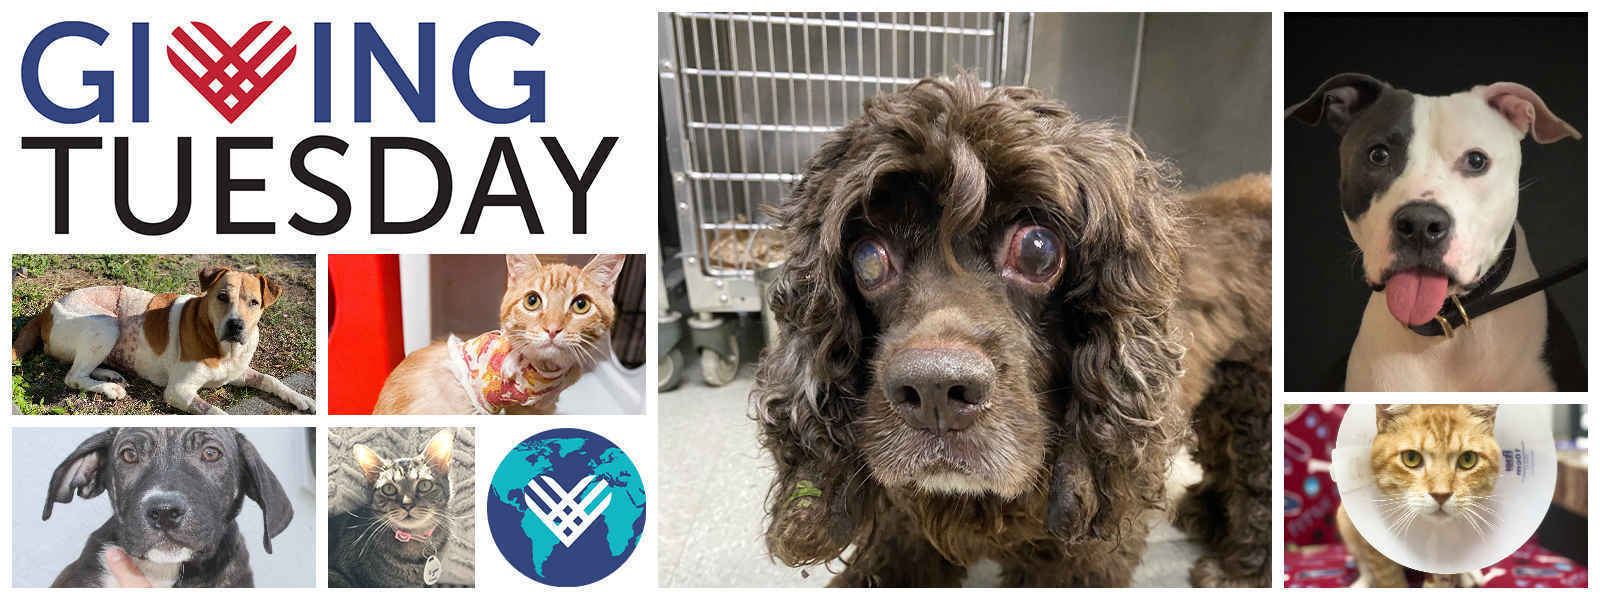 Double your gift today for an animal with special needs image